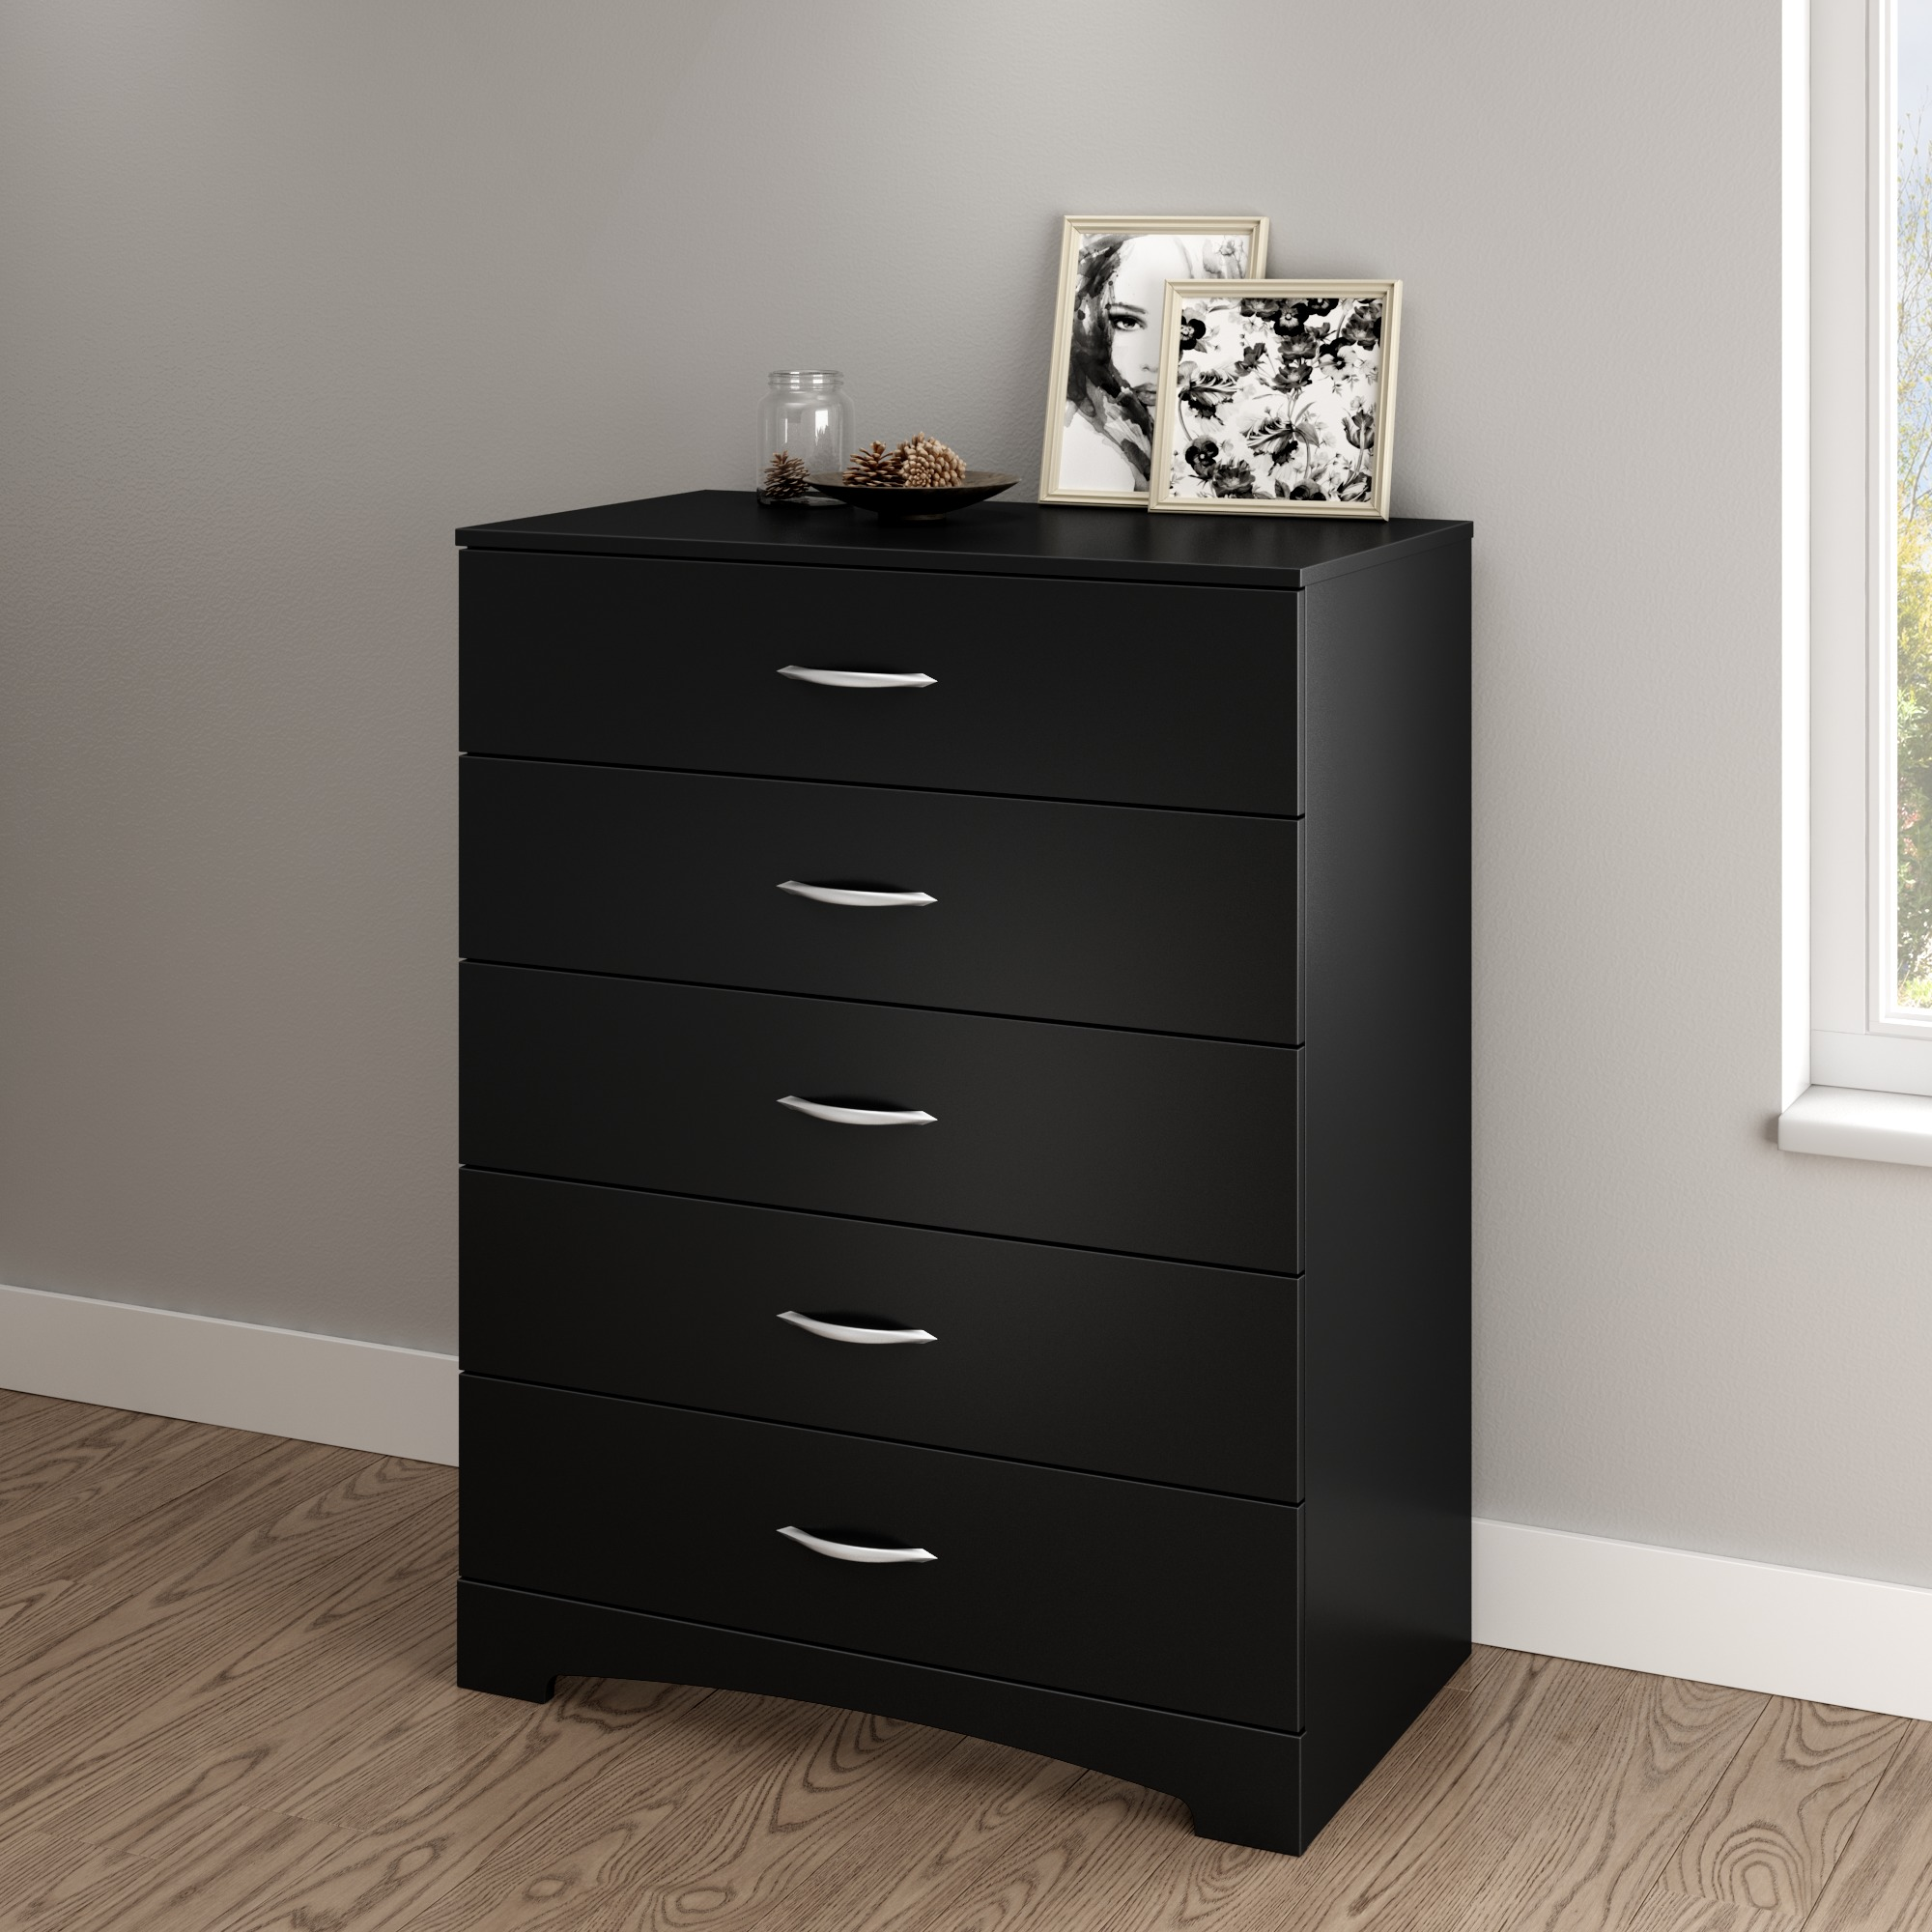 South Shore SoHo 5-Drawer Dresser, Multiple Finishes